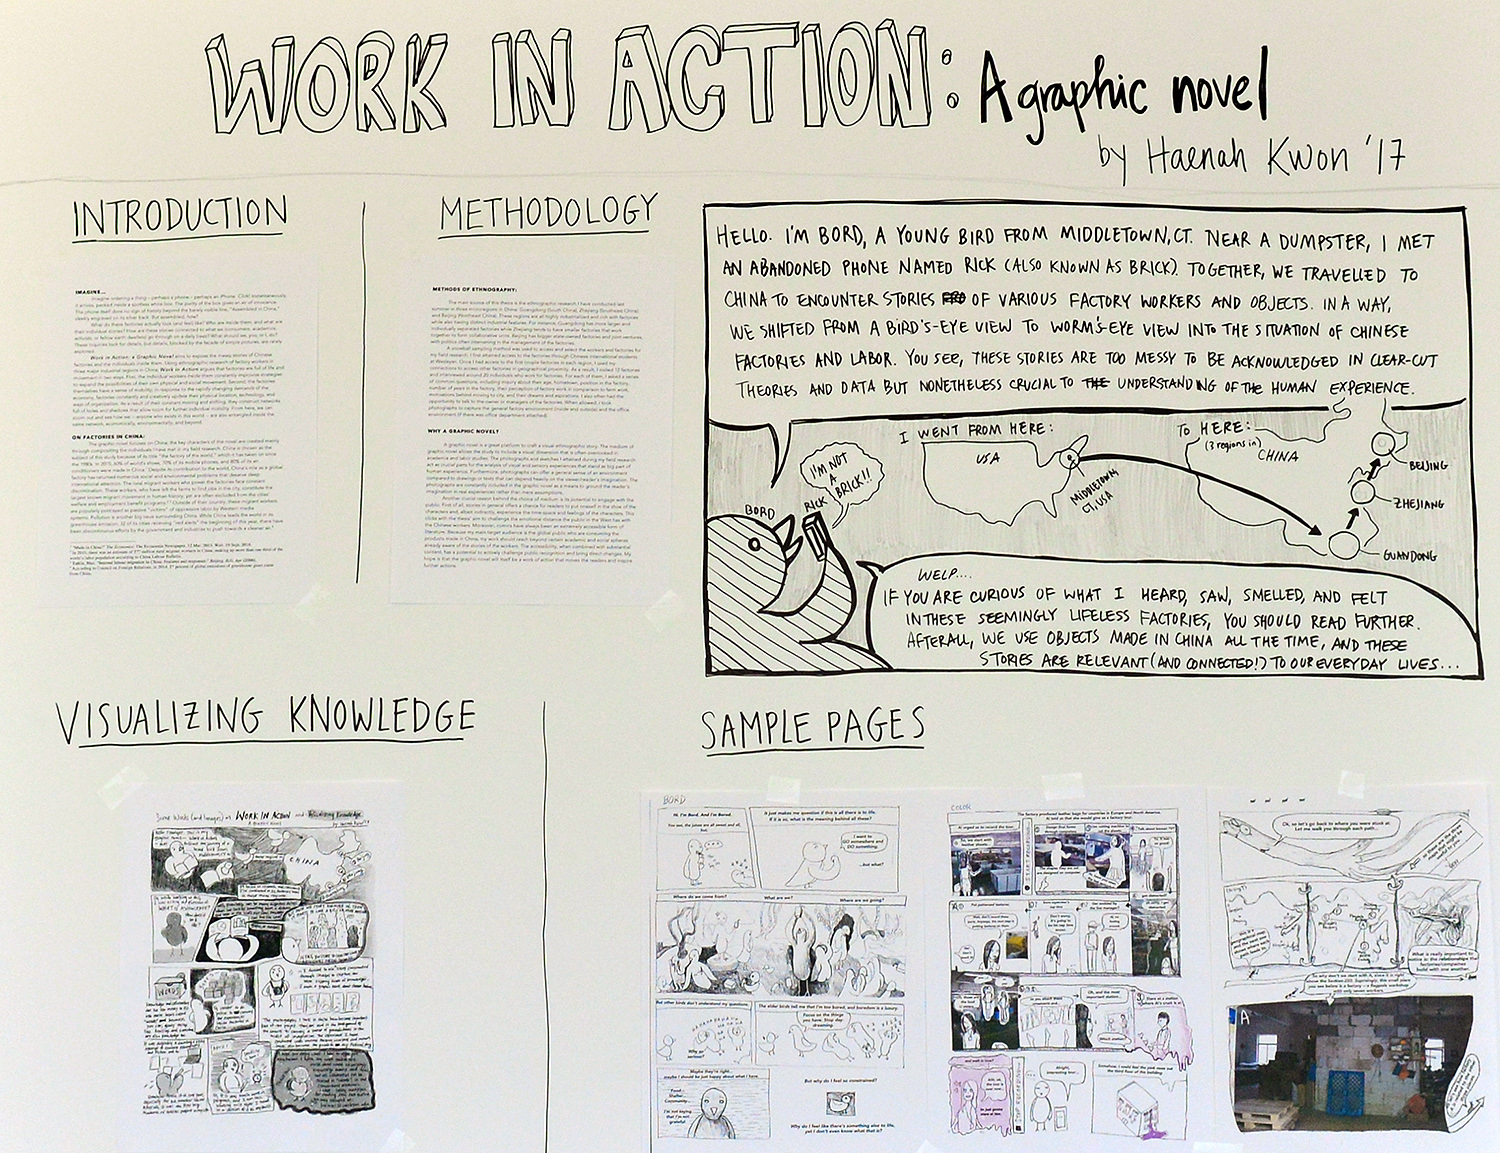 "Examples of data visualization include infographics; photographs; microscopy, or spectroscopy; illustrations; GIS mapping; 2-D image maps; digital renderings; digital 3-D visualizations, 3-D printing or sculpture; and interactive displays or programs. Pictured is a presentation on the situation of Chinese labor titled ""Work In Action: A Graphic Novel"" by Haenah Kwon '17."